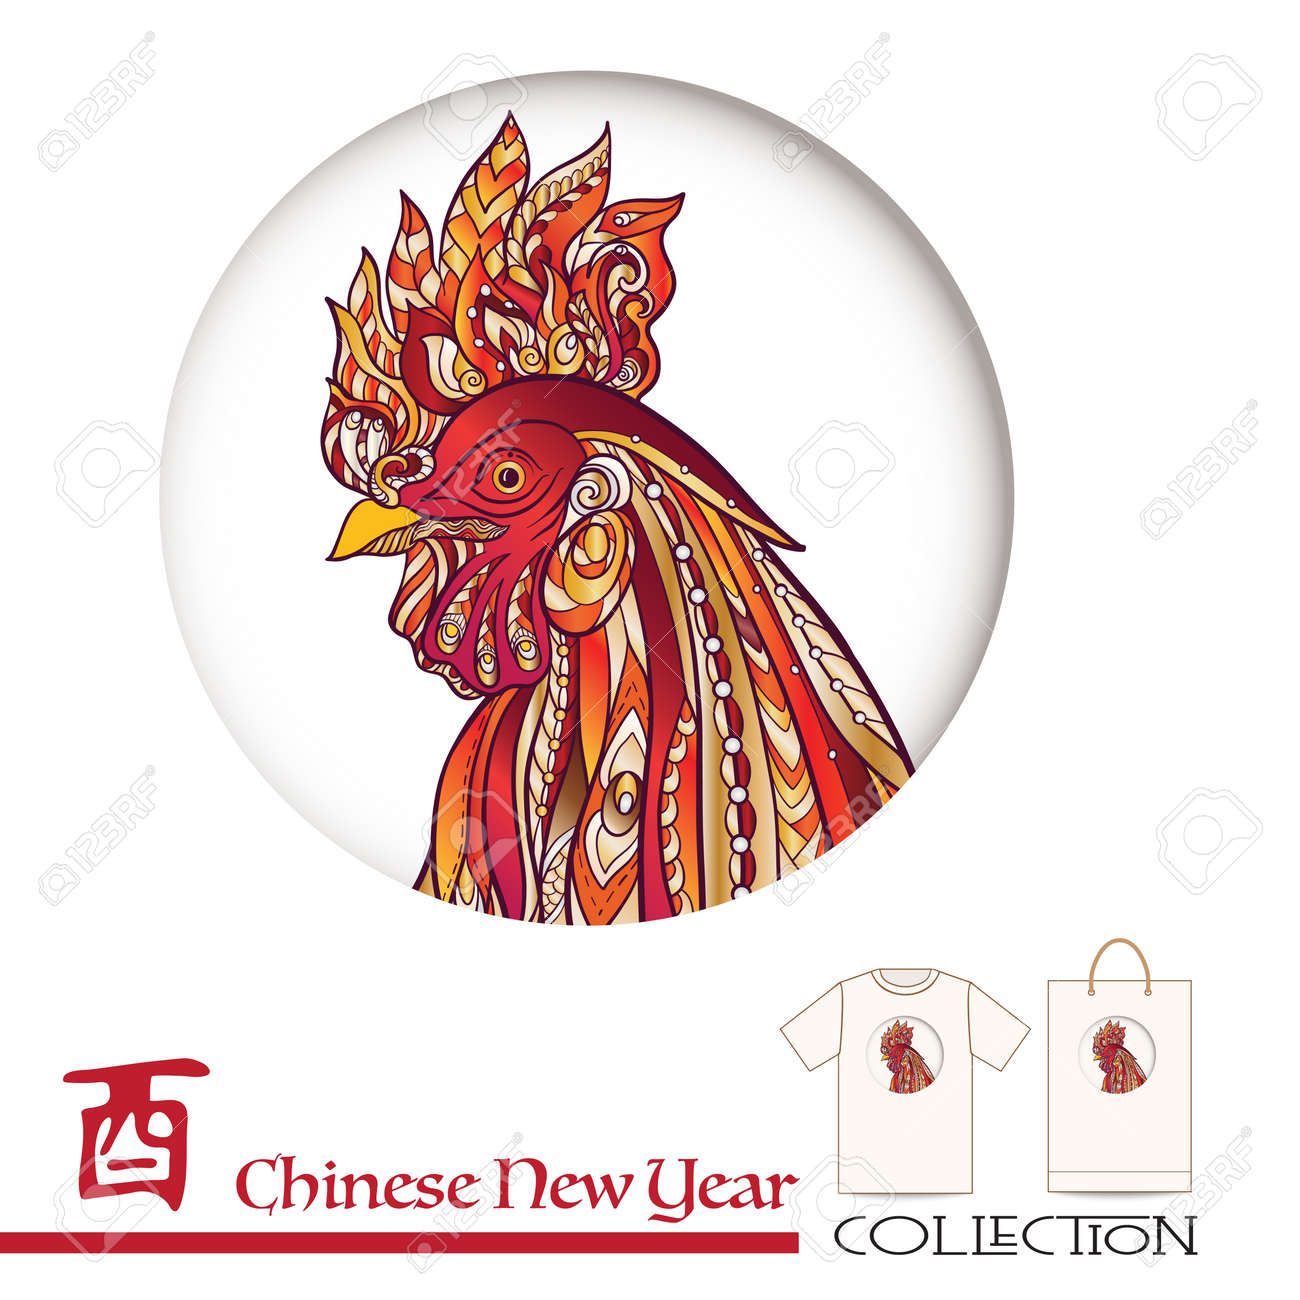 Decorative rooster chinese new year symbol of 2017 new year chinese new year symbol of 2017 new year this illustration can be buycottarizona Gallery